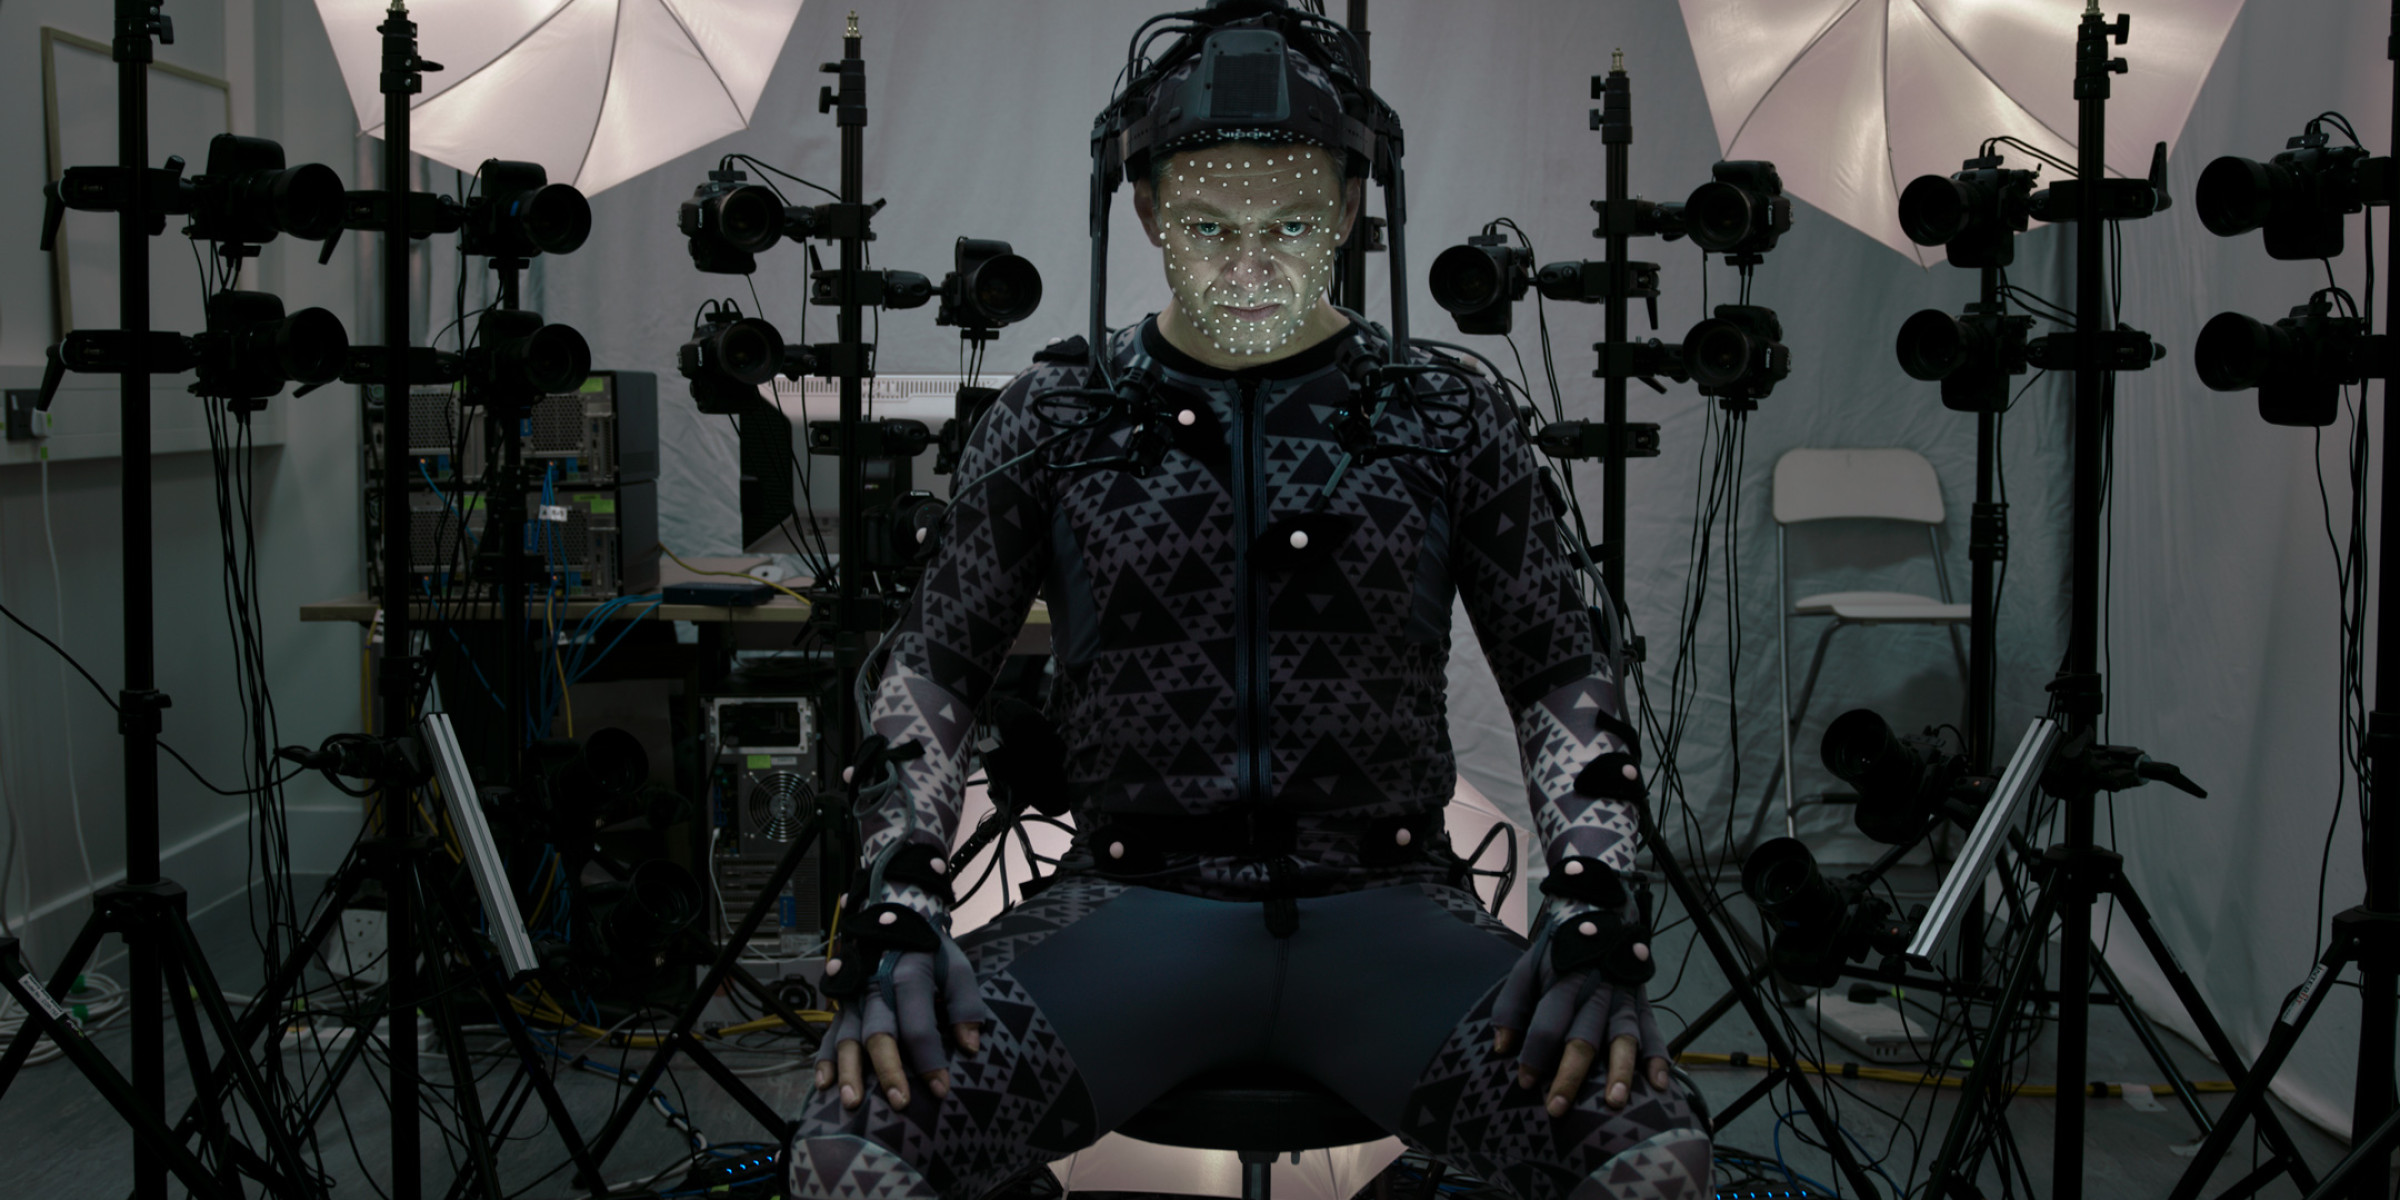 Star Wars The Last Jedi's Andy Serkis Dishes More Details On Supreme Leader Snoke